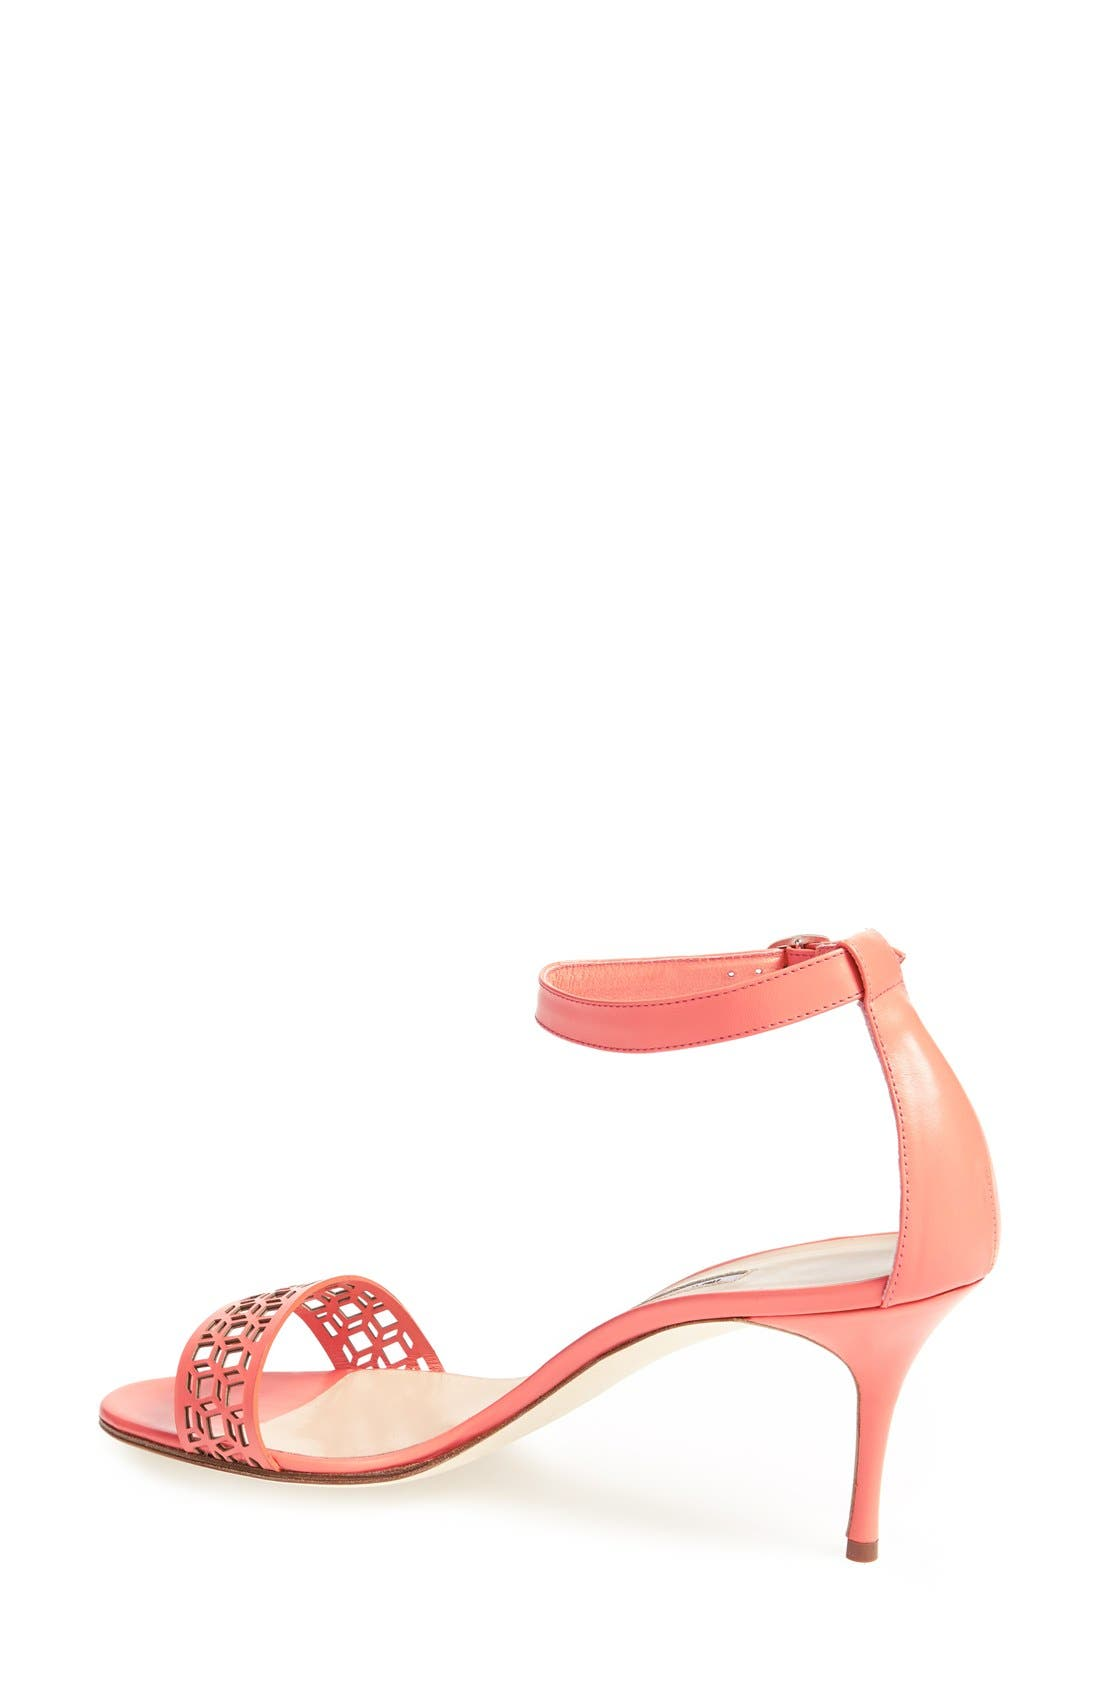 Alternate Image 2  - Manolo Blahnik 'Maurila' Leather Ankle Strap Sandal (Women)